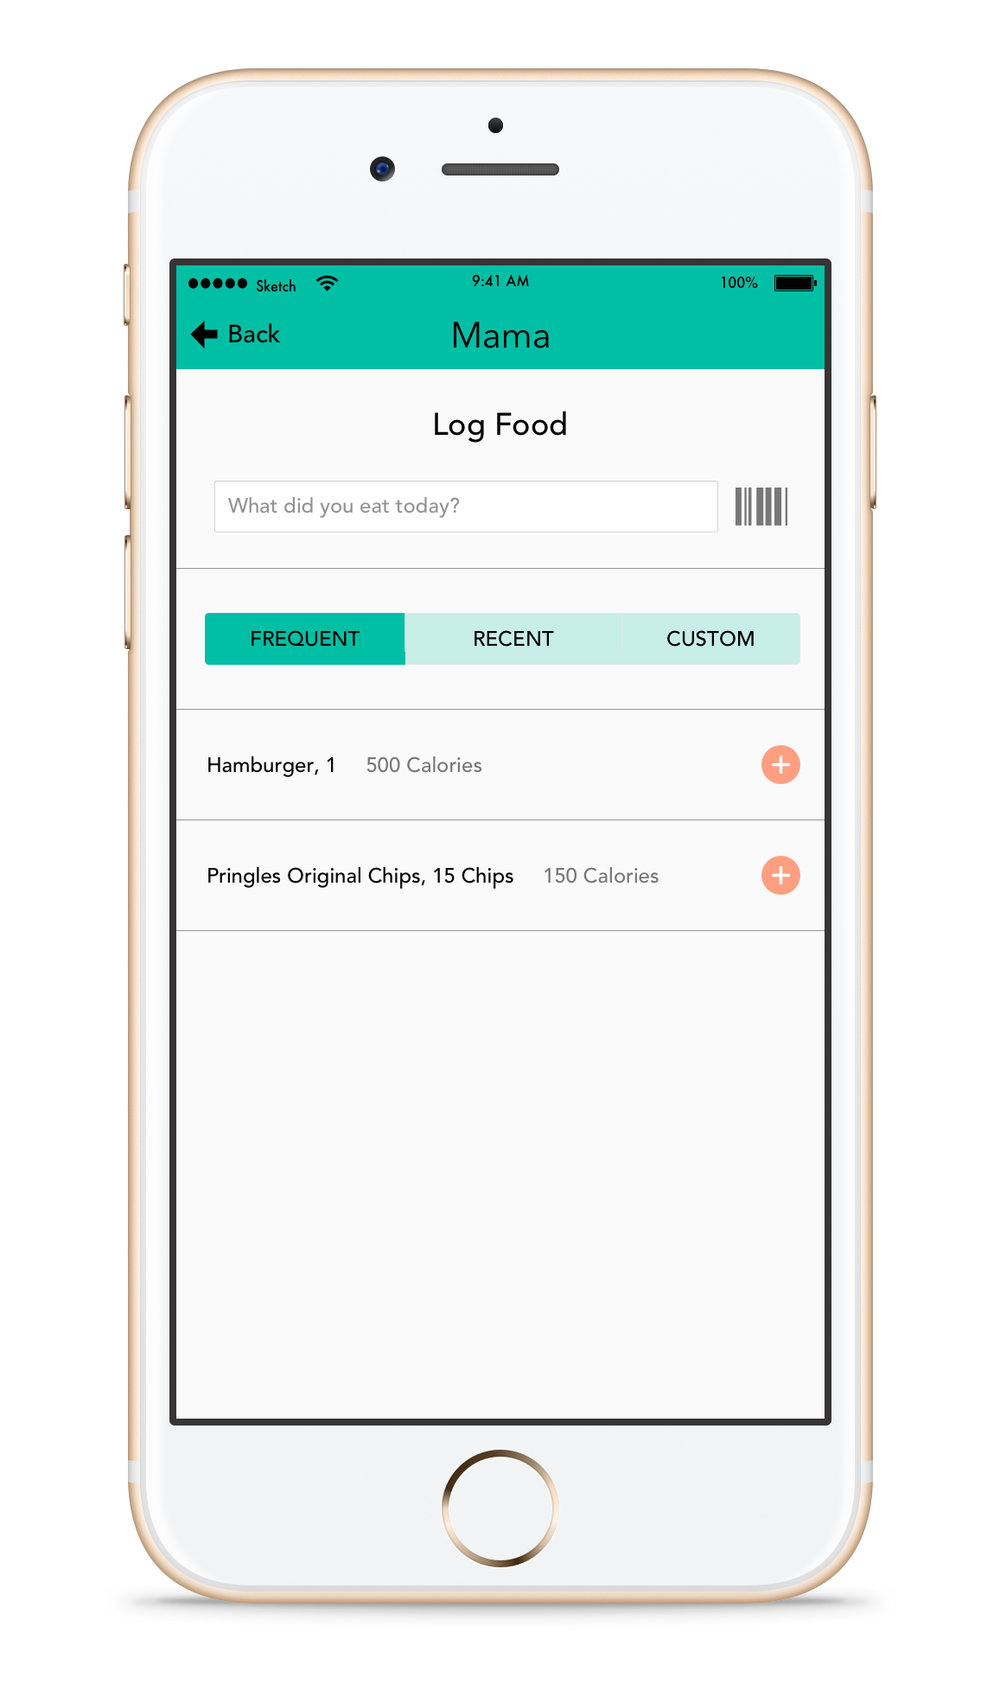 Adding Food - When logging in food the mother can either type it in, scan the food package, via barcode, or quickly grab from frequent foods. Frequent shows as default since there are usually a few